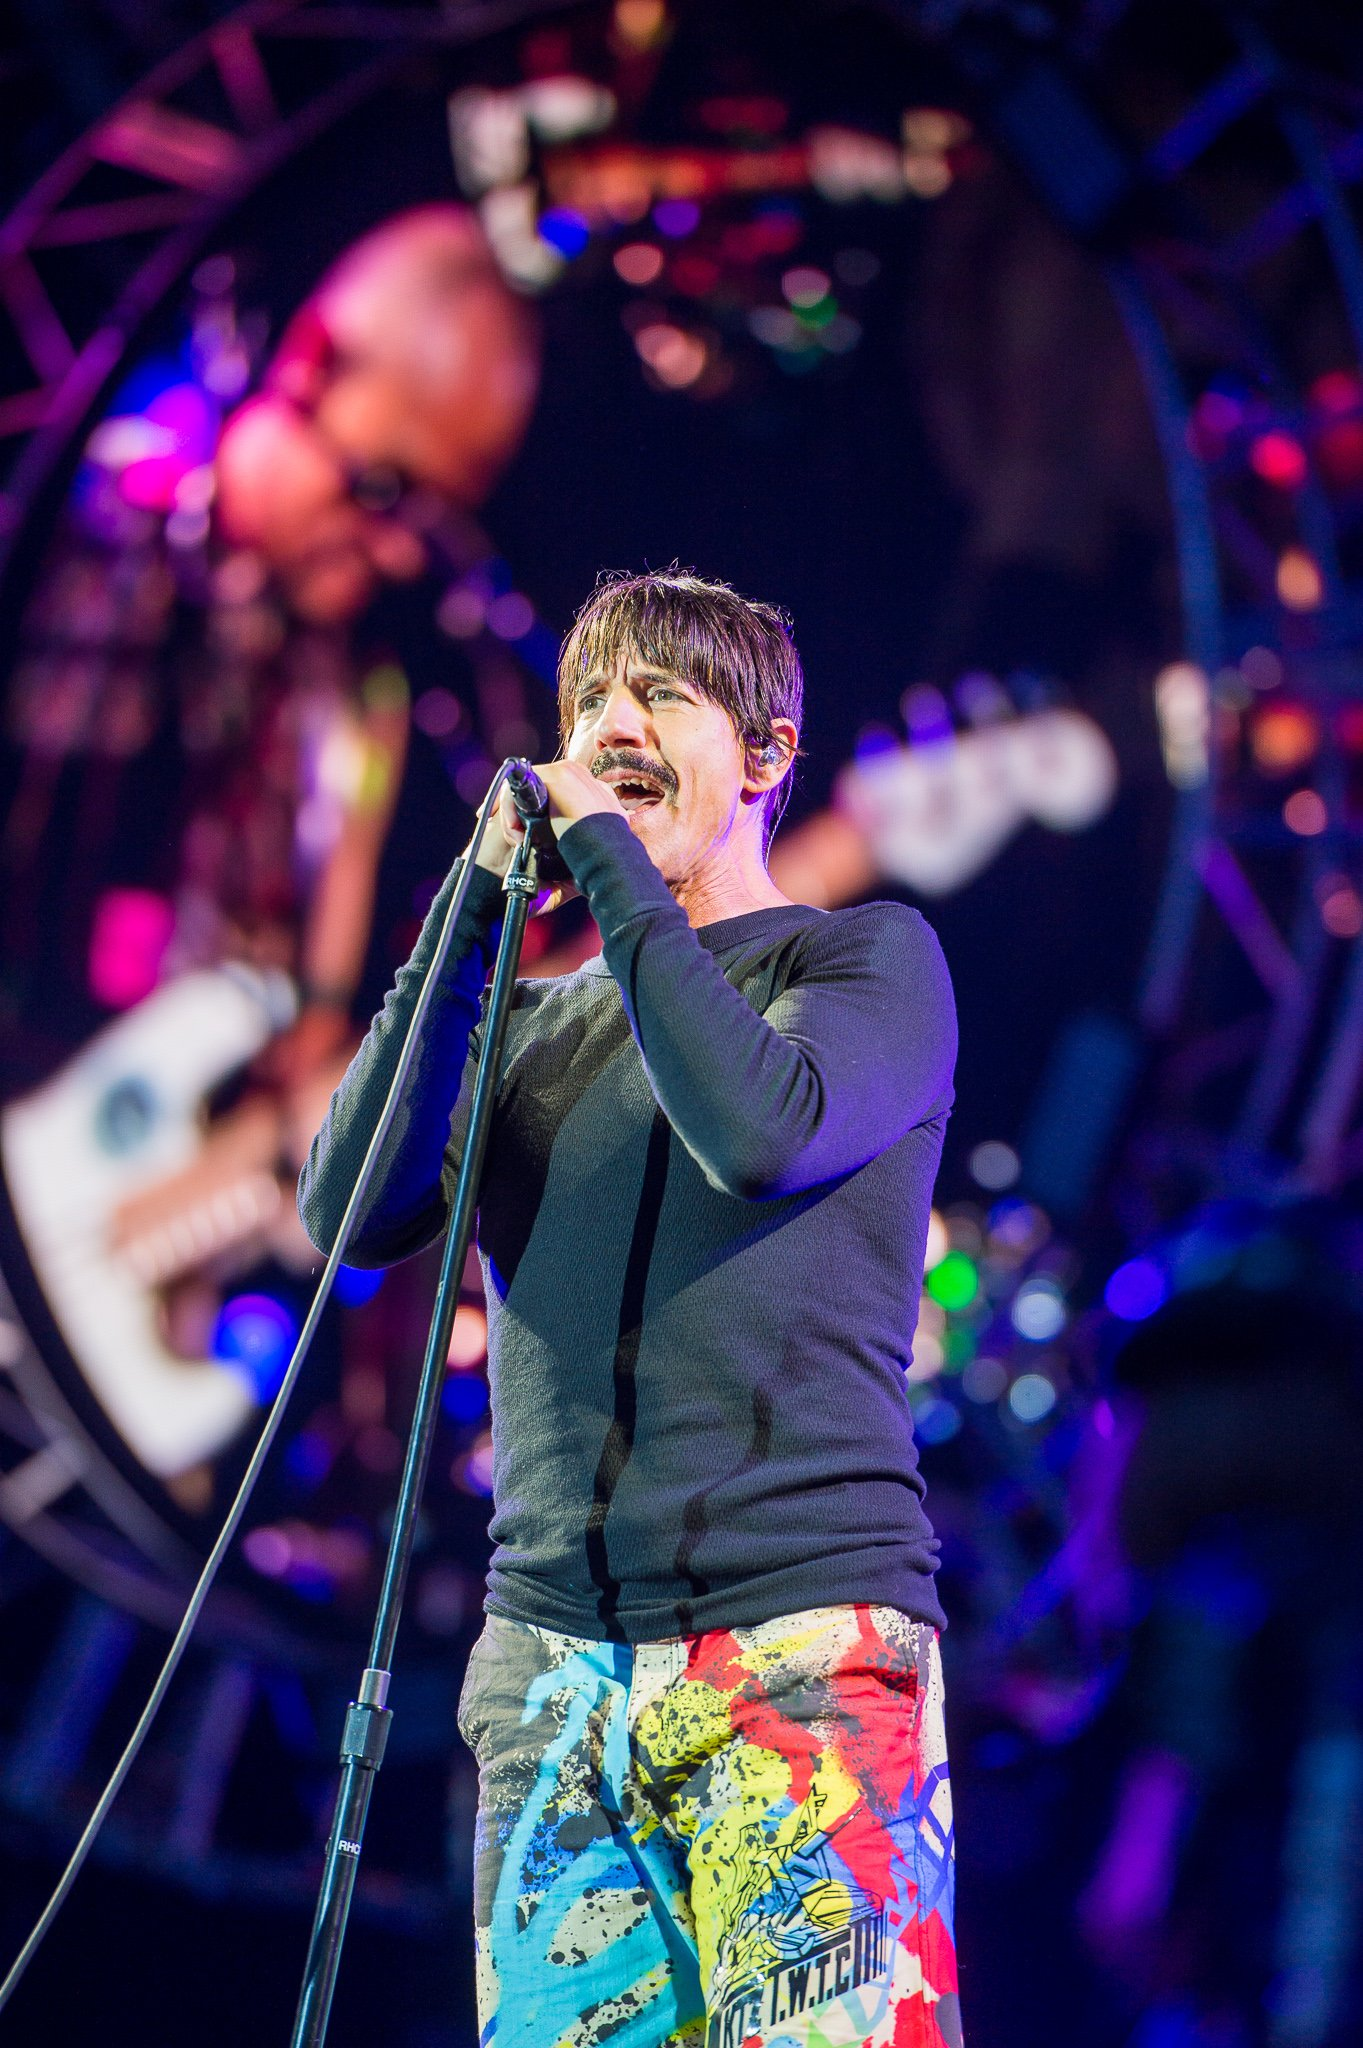 Anthony Kiedis performing during the Getaway World Tour at the Rock im Park,  Nuremburg, Germany on June 5, 2016. | Photo:  Stefan Brending,CC BY-SA 3.0 DE, Wikimedia Commons.